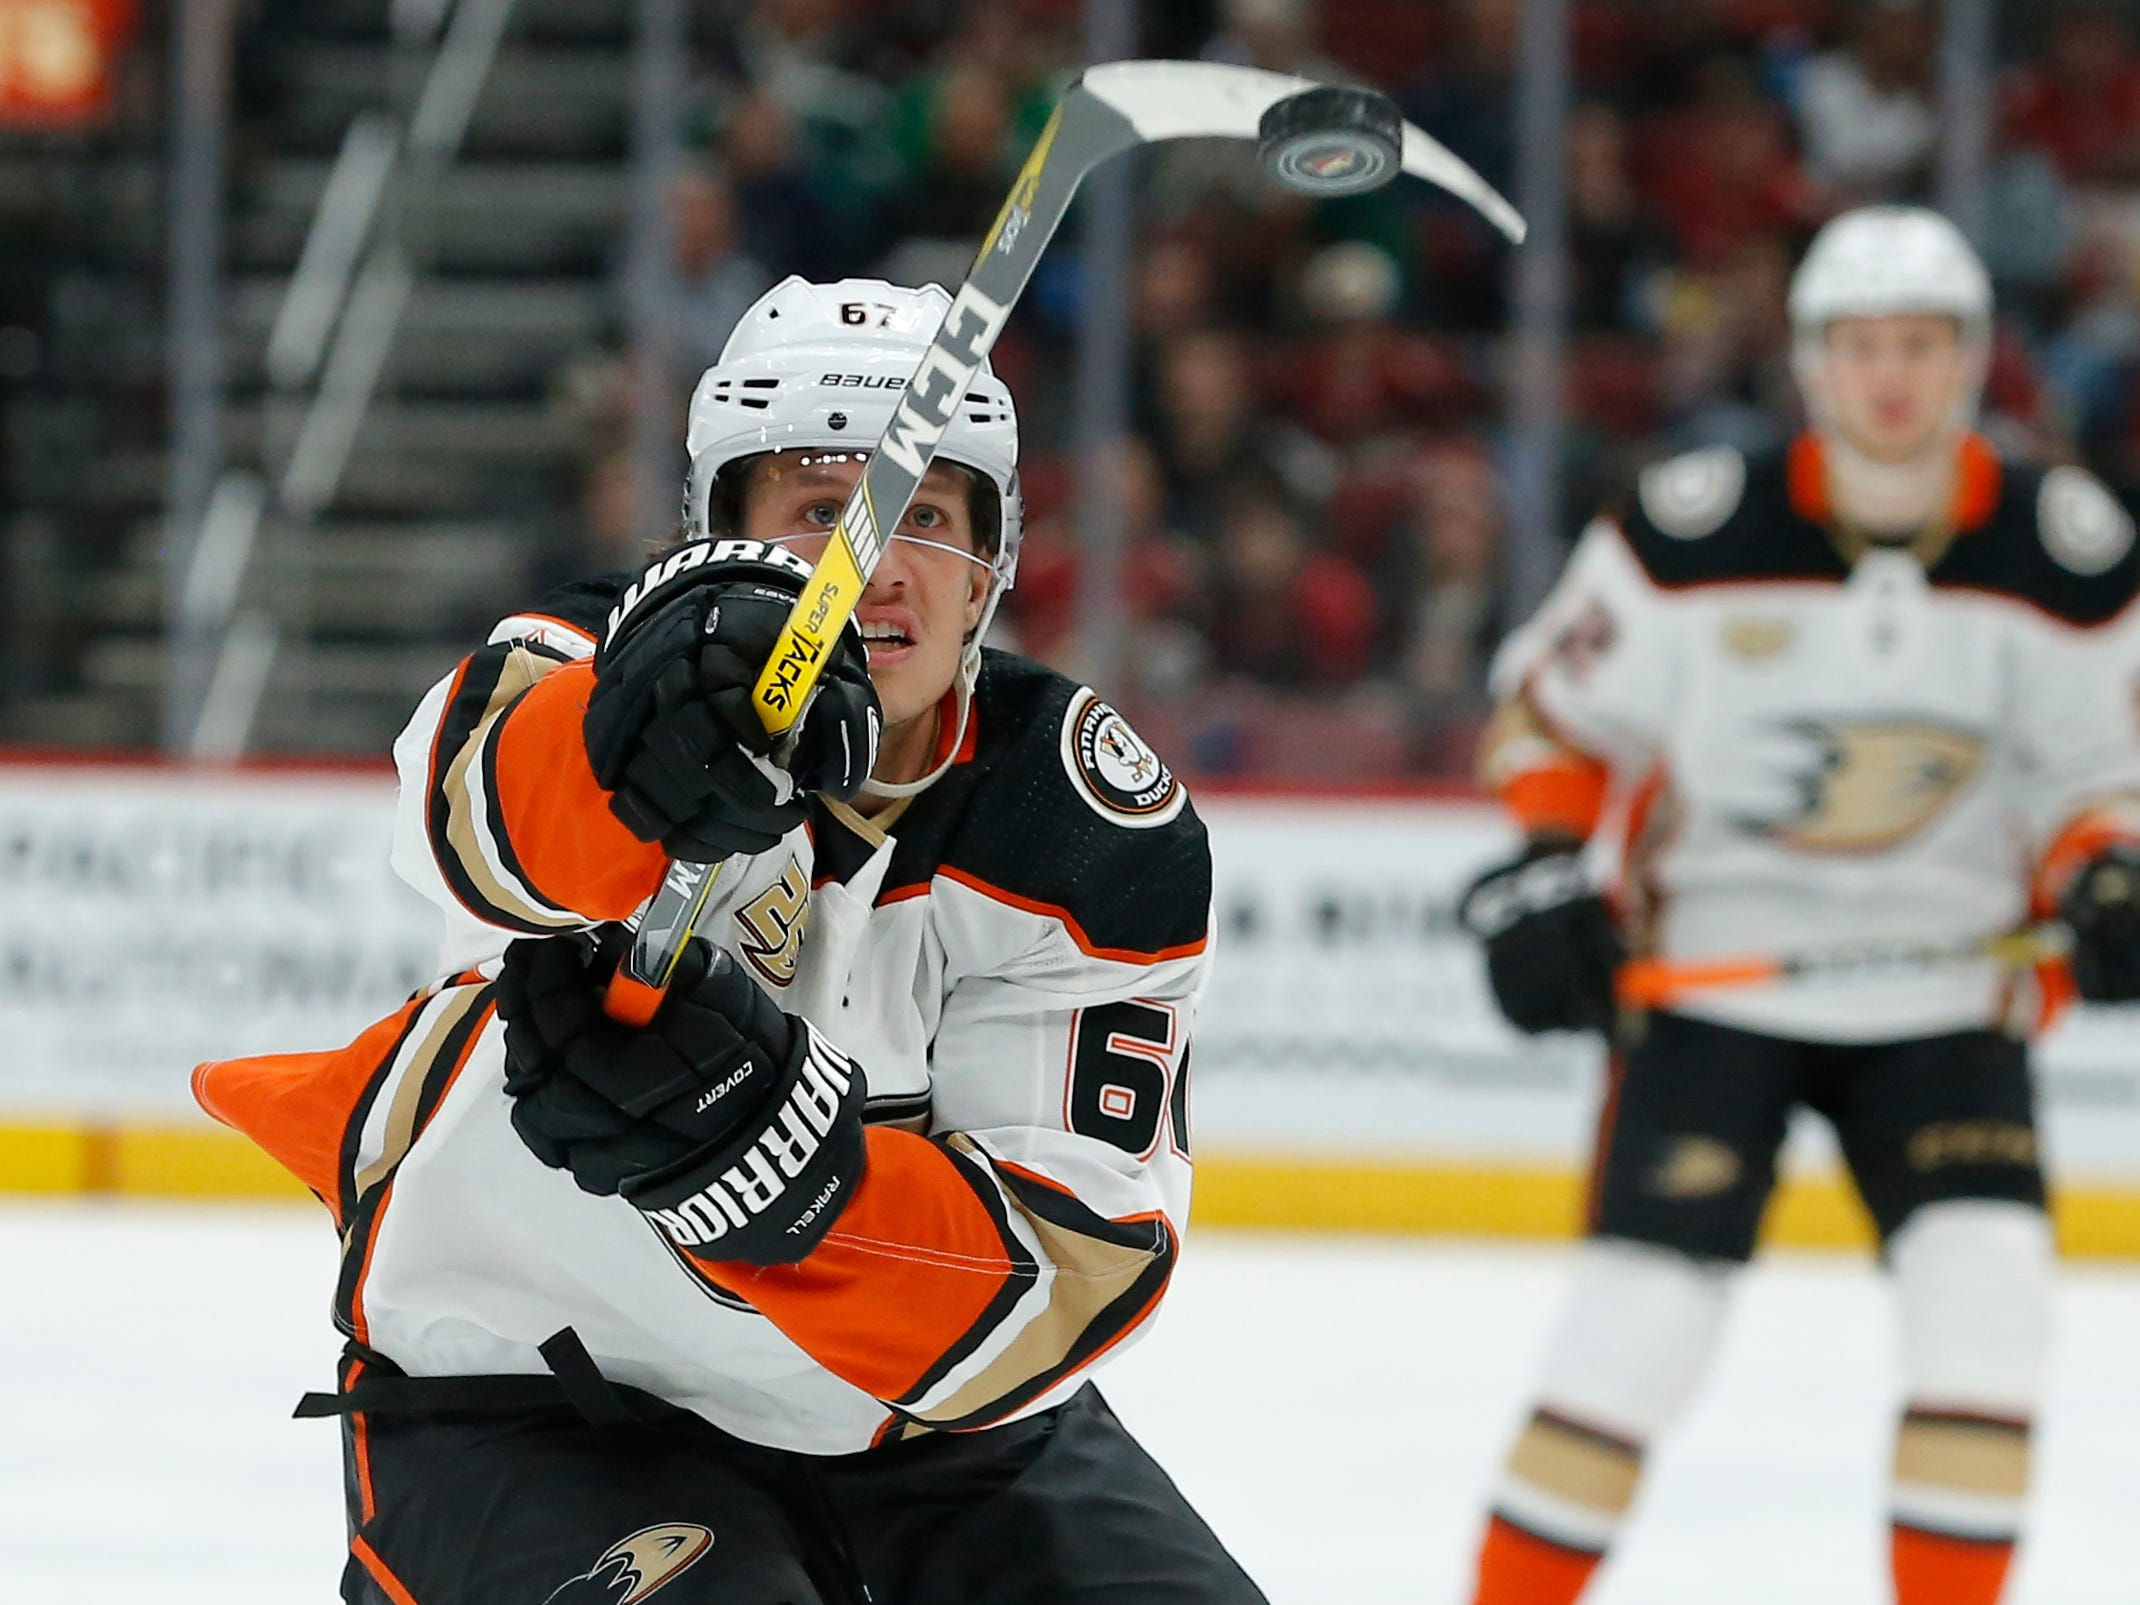 Anaheim Ducks left wing Rickard Rakell (67) swipes at the puck in the second period during an NHL hockey game against the Arizona Coyotes, Thursday, March 14, 2019, in Glendale, Ariz.